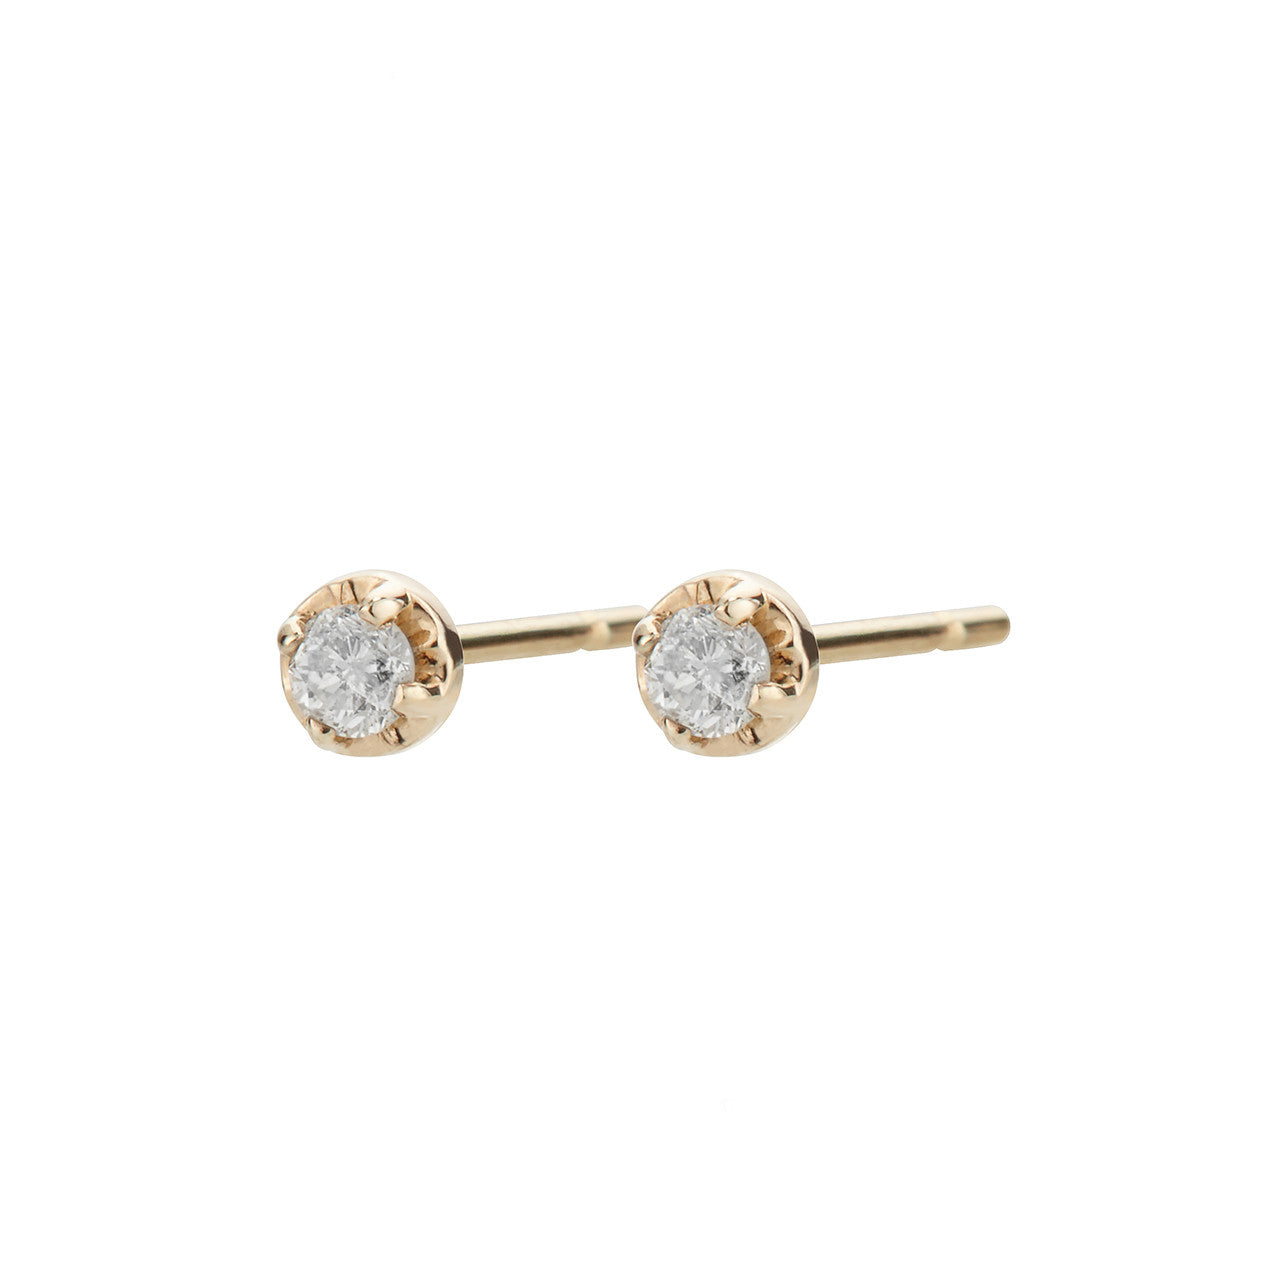 Medium prong studs, white diamond